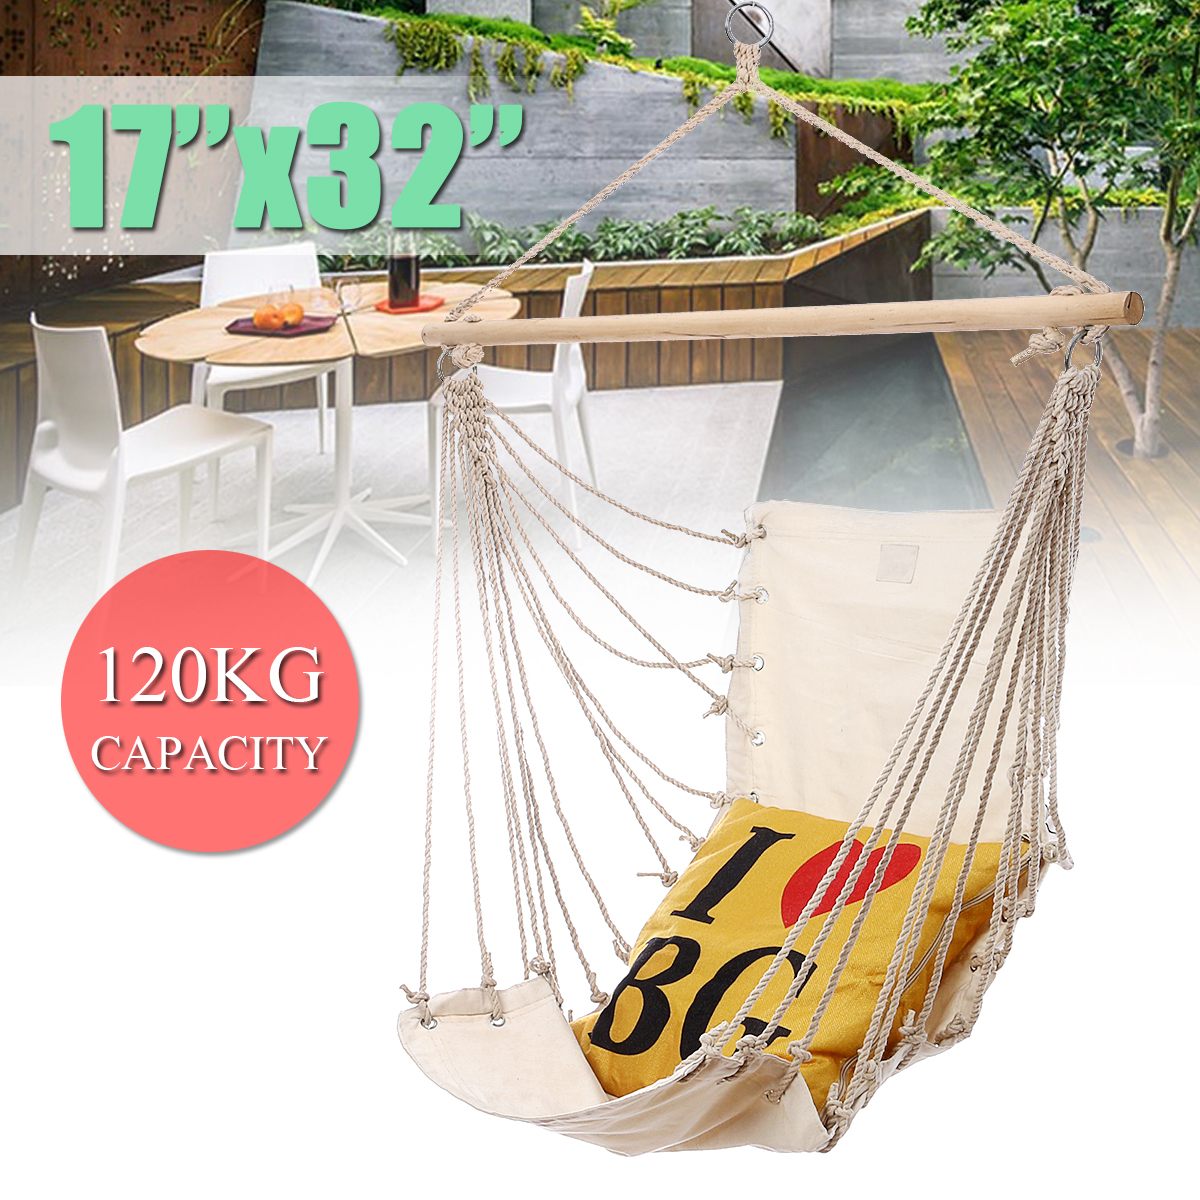 SGODDE Outdoor Garden Hanging Hammock Chair Camping Single Swing Seat Relaxing Furniture For Child Adult Swinging Safety Chair